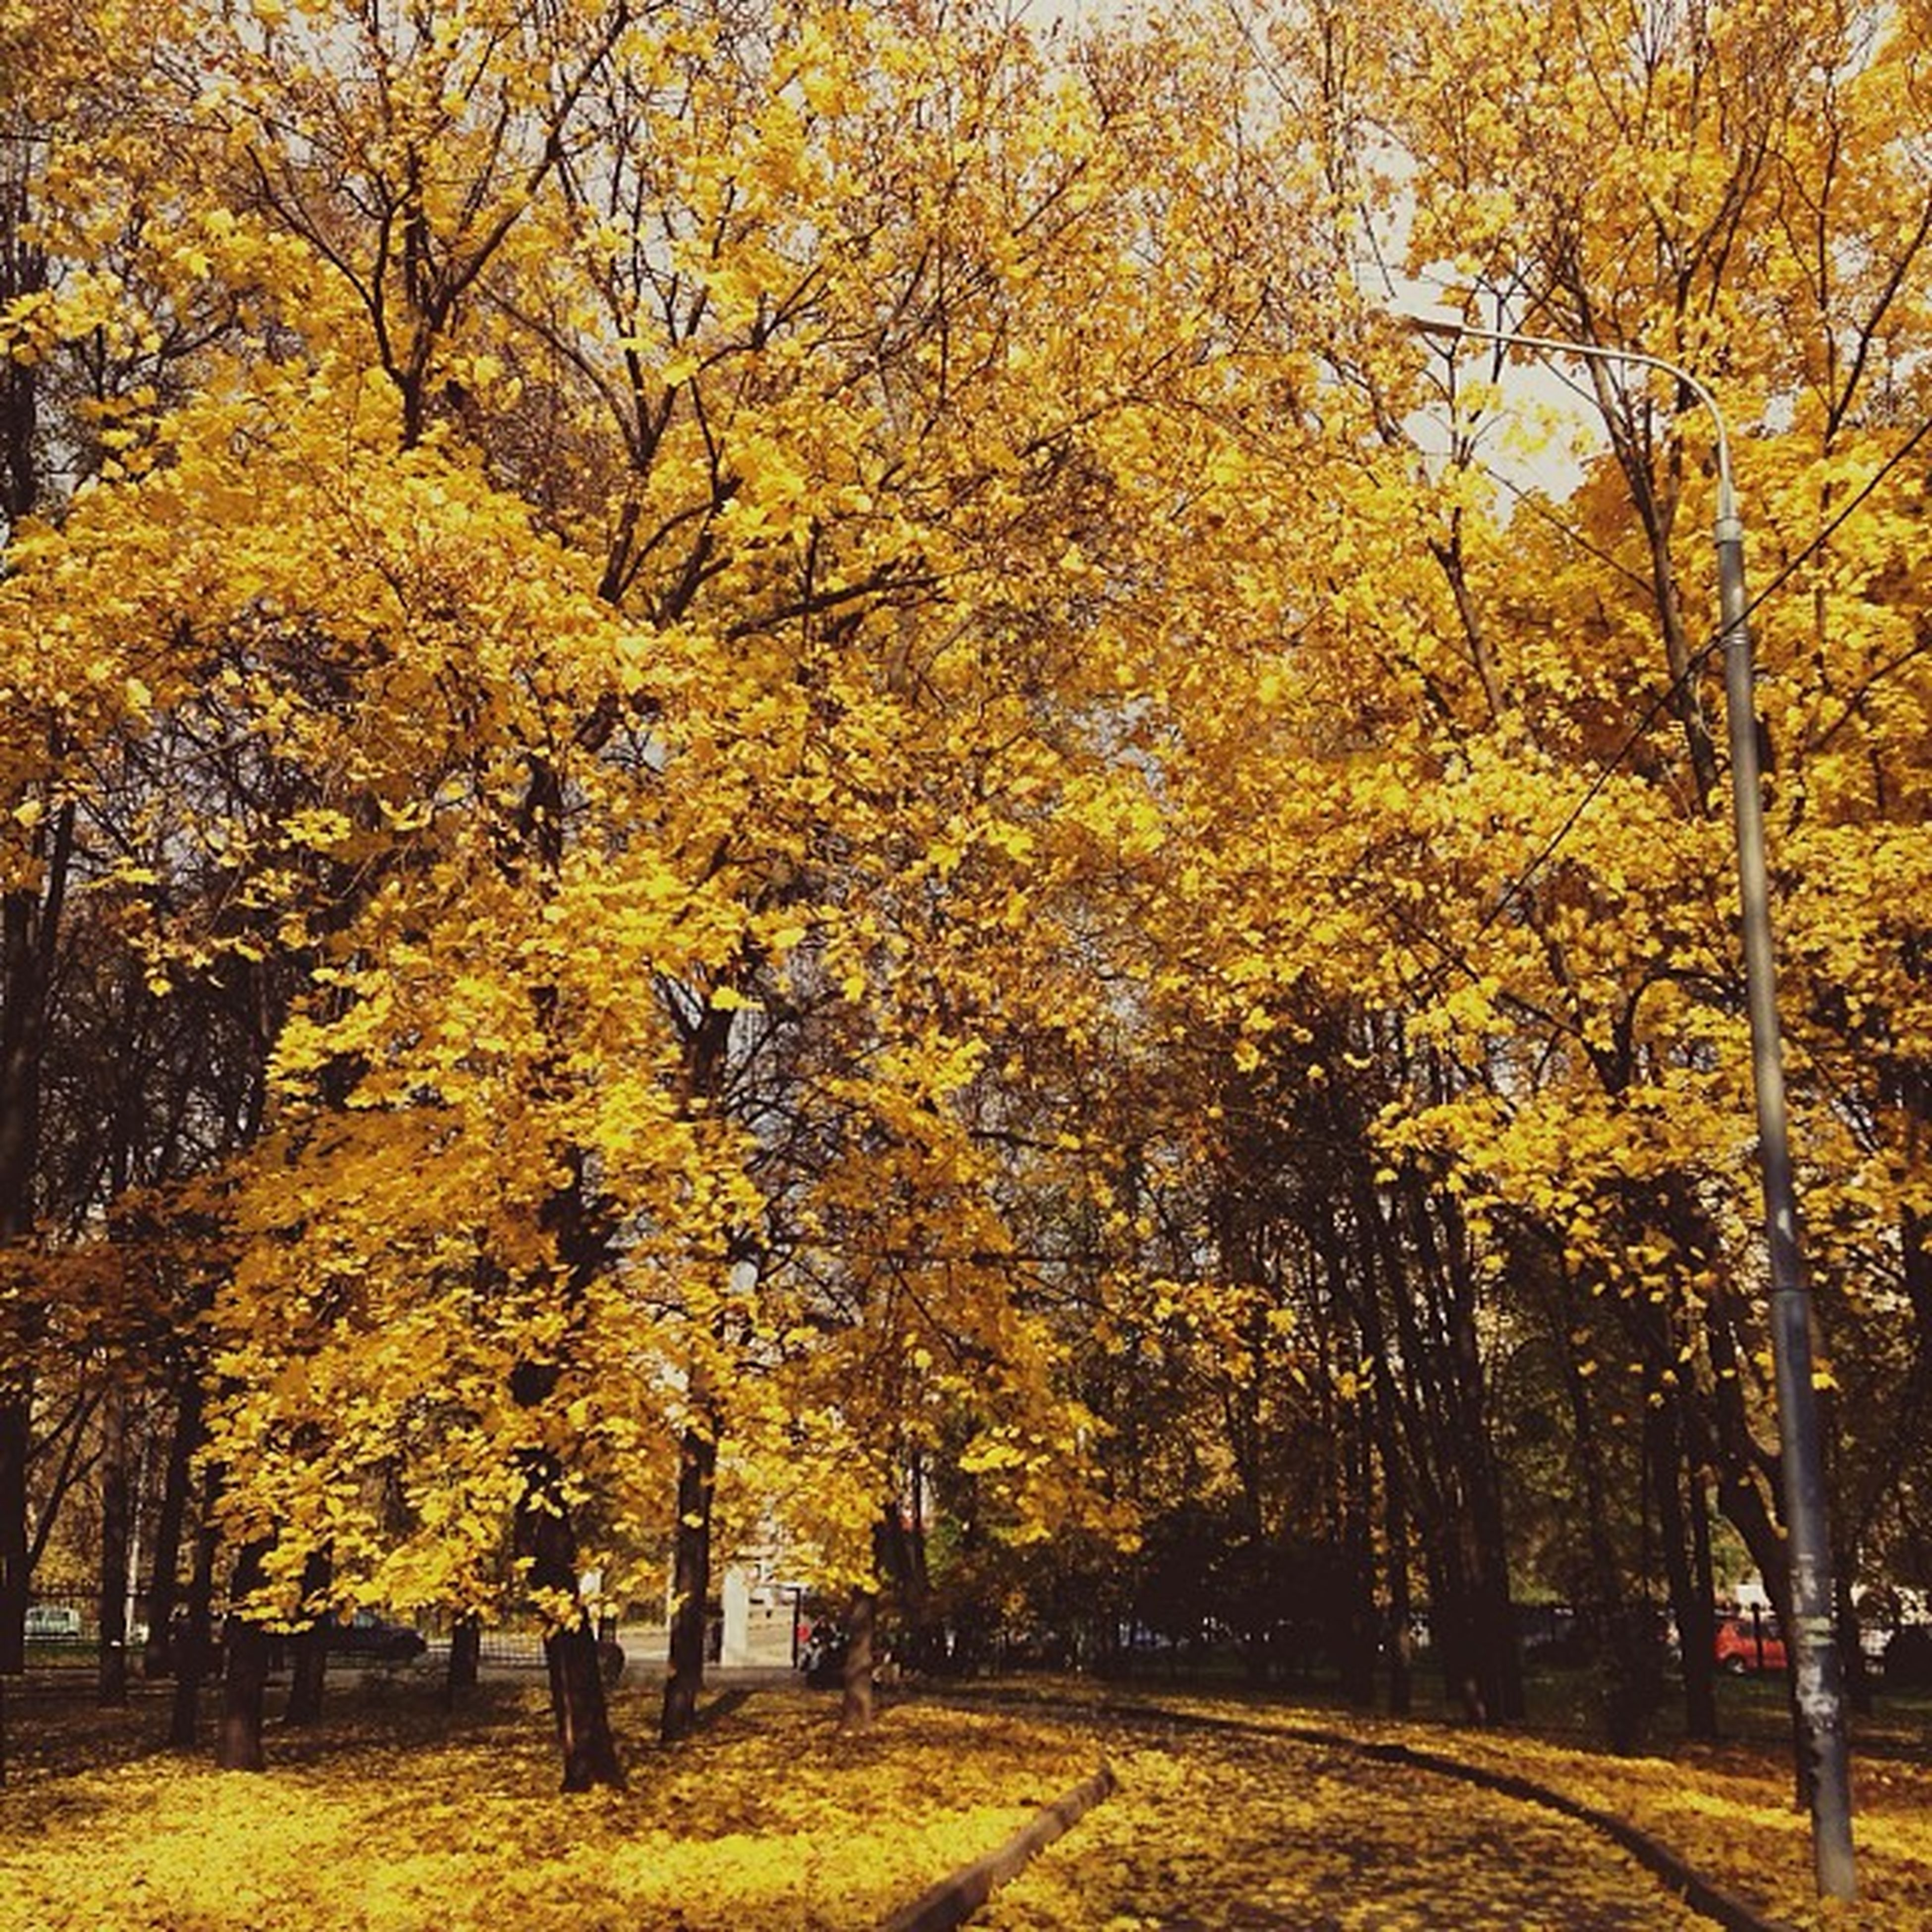 tree, autumn, change, yellow, season, branch, tranquility, growth, nature, beauty in nature, tranquil scene, scenics, orange color, park - man made space, tree trunk, the way forward, leaf, outdoors, treelined, day